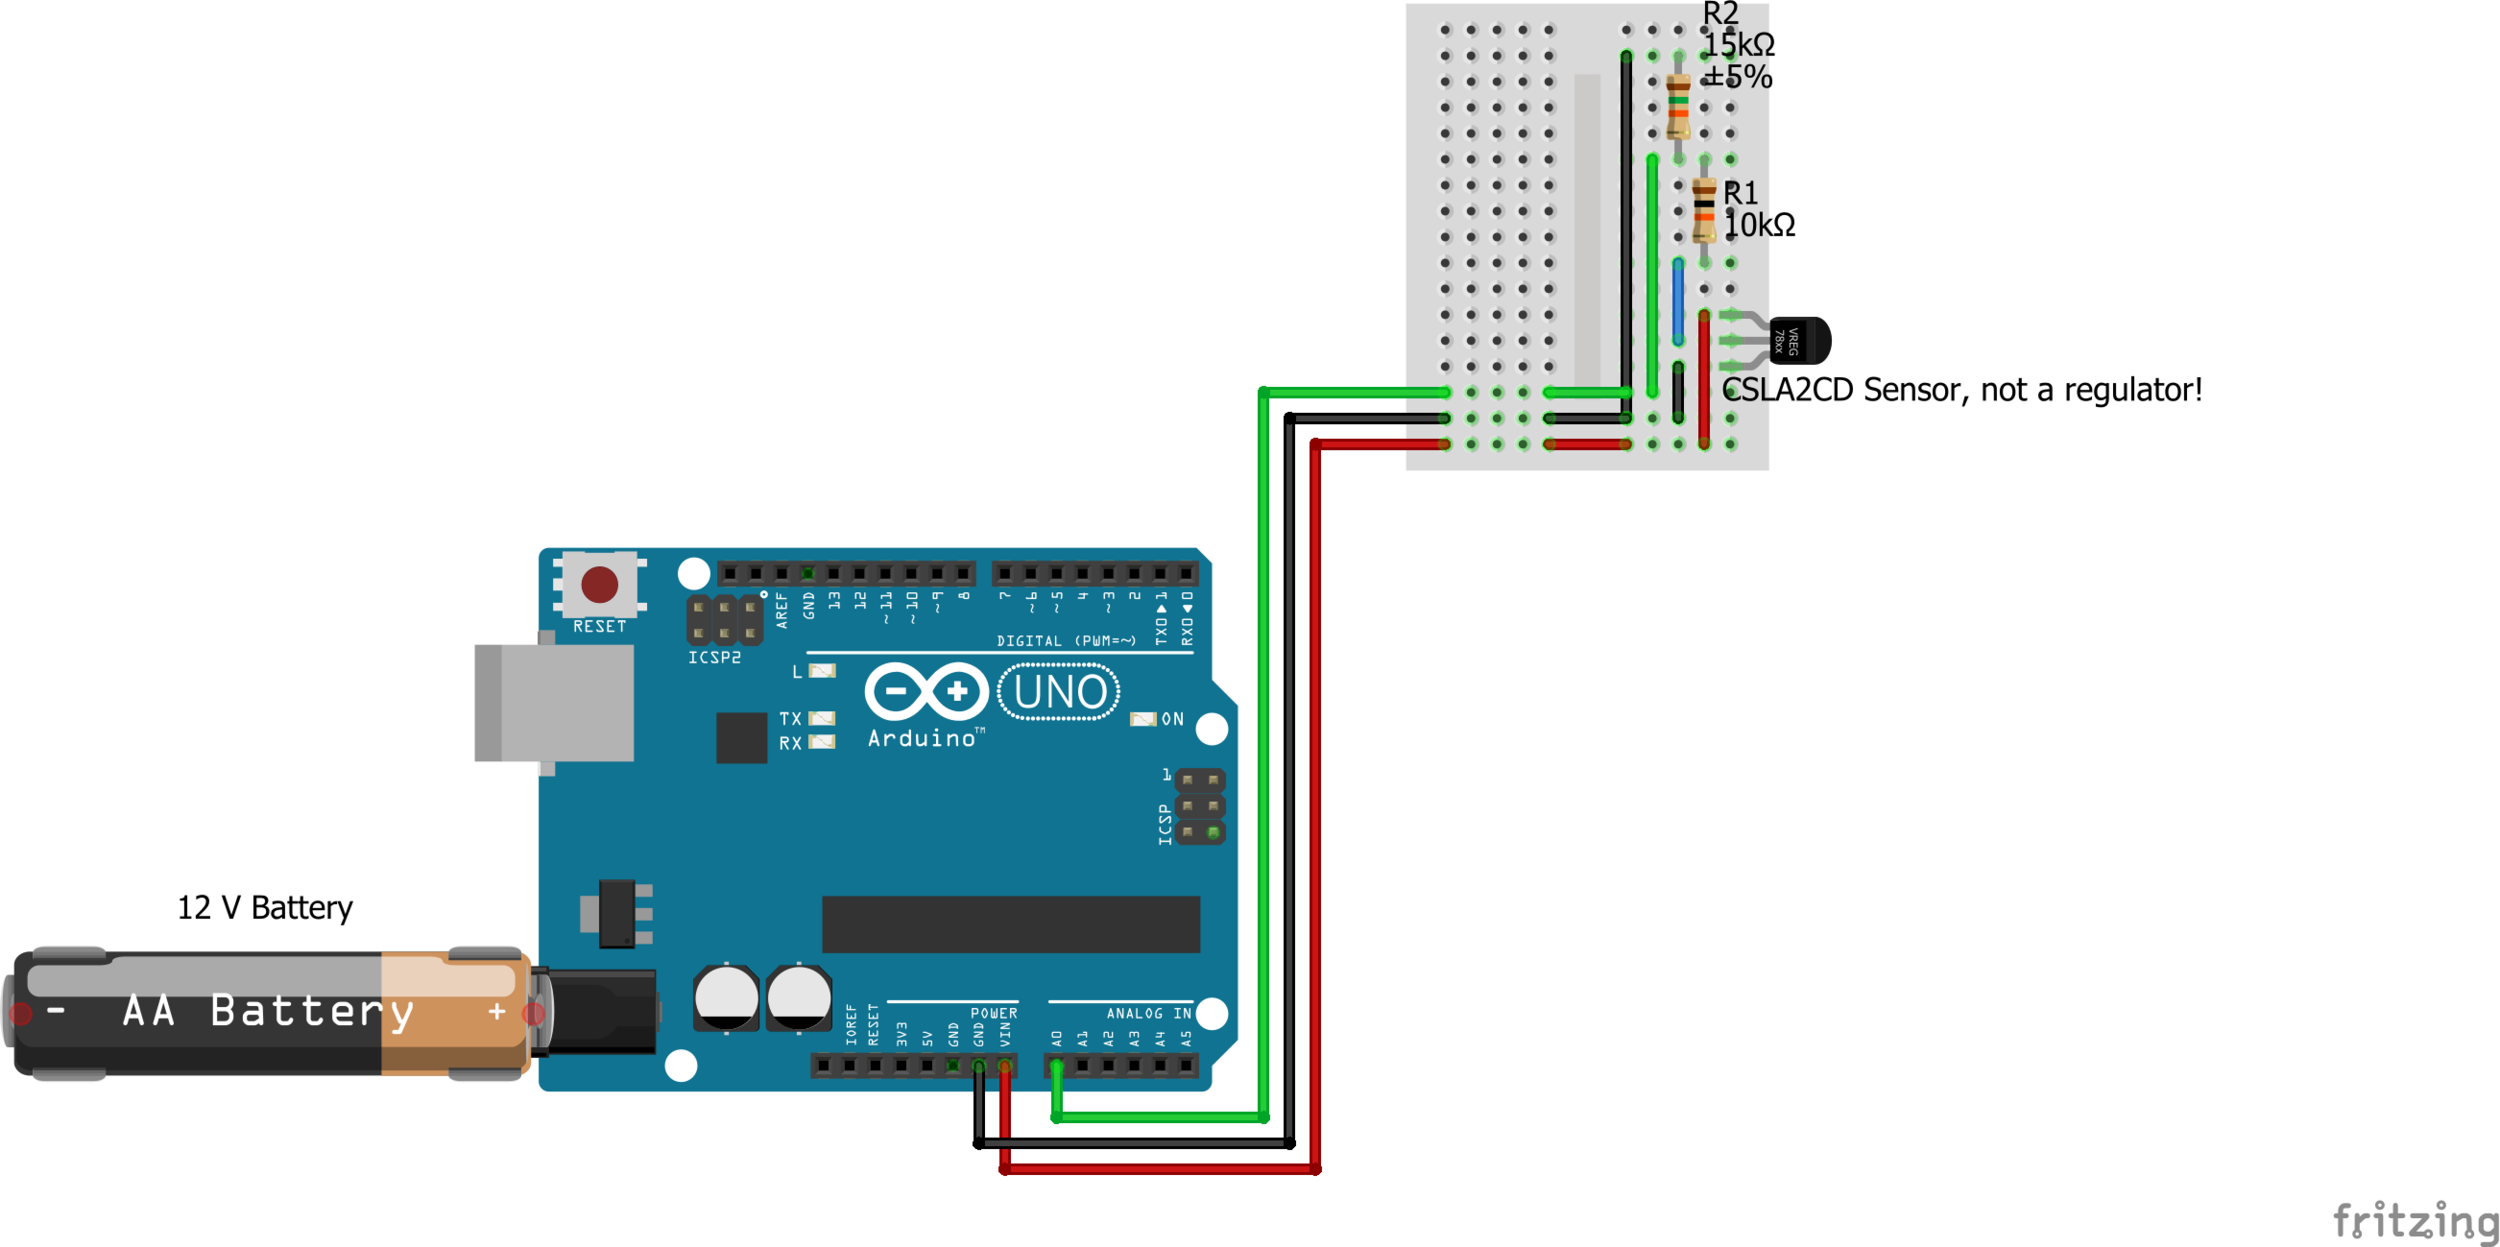 Disregard the AA battery. The Arduino is directly connected to the 12 volt battery.